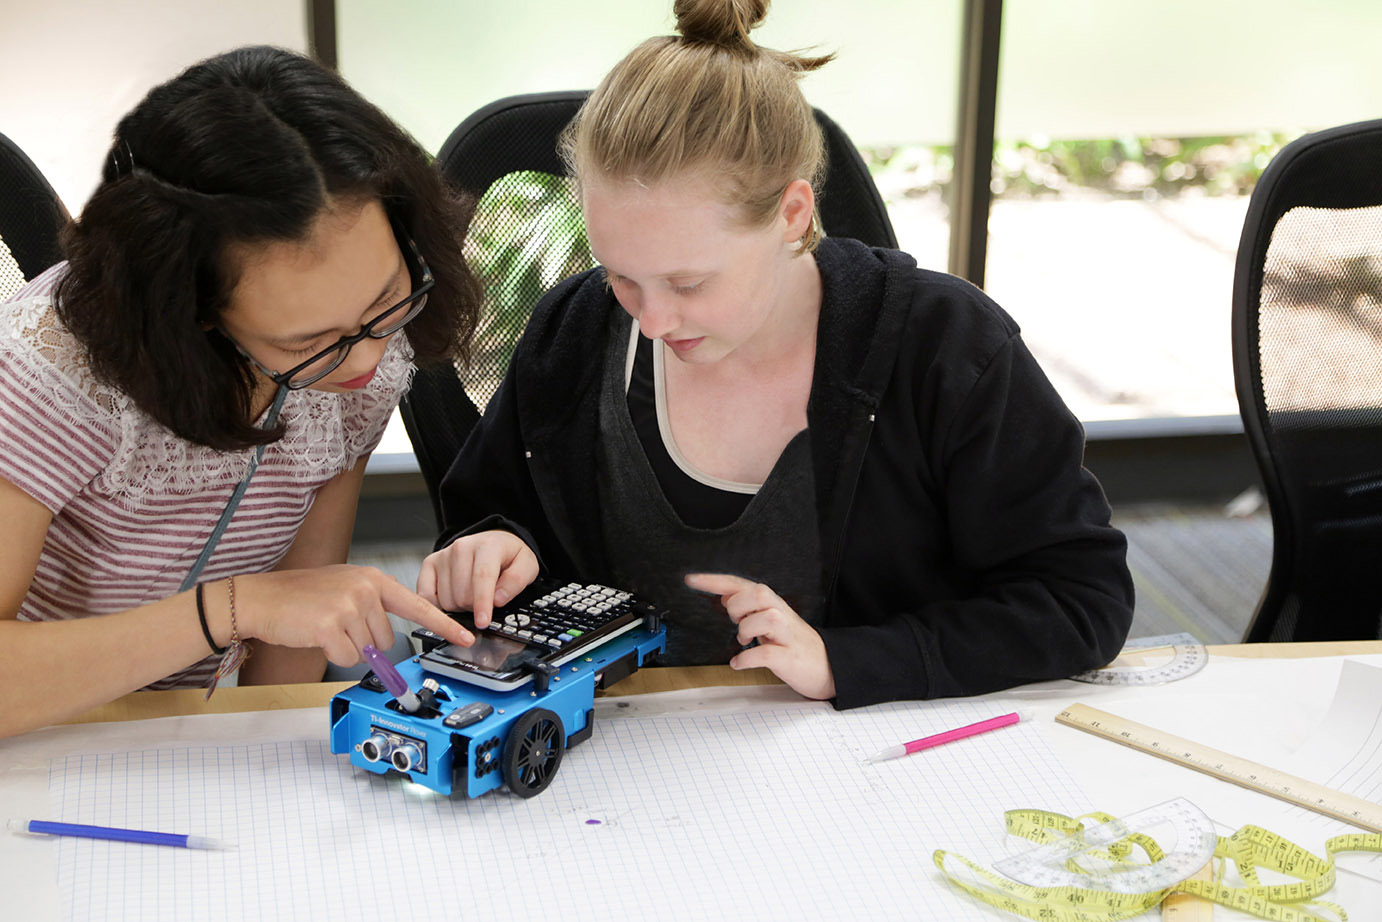 Students have so much fun with Rover, they don't realize they are learning important STEM concepts.